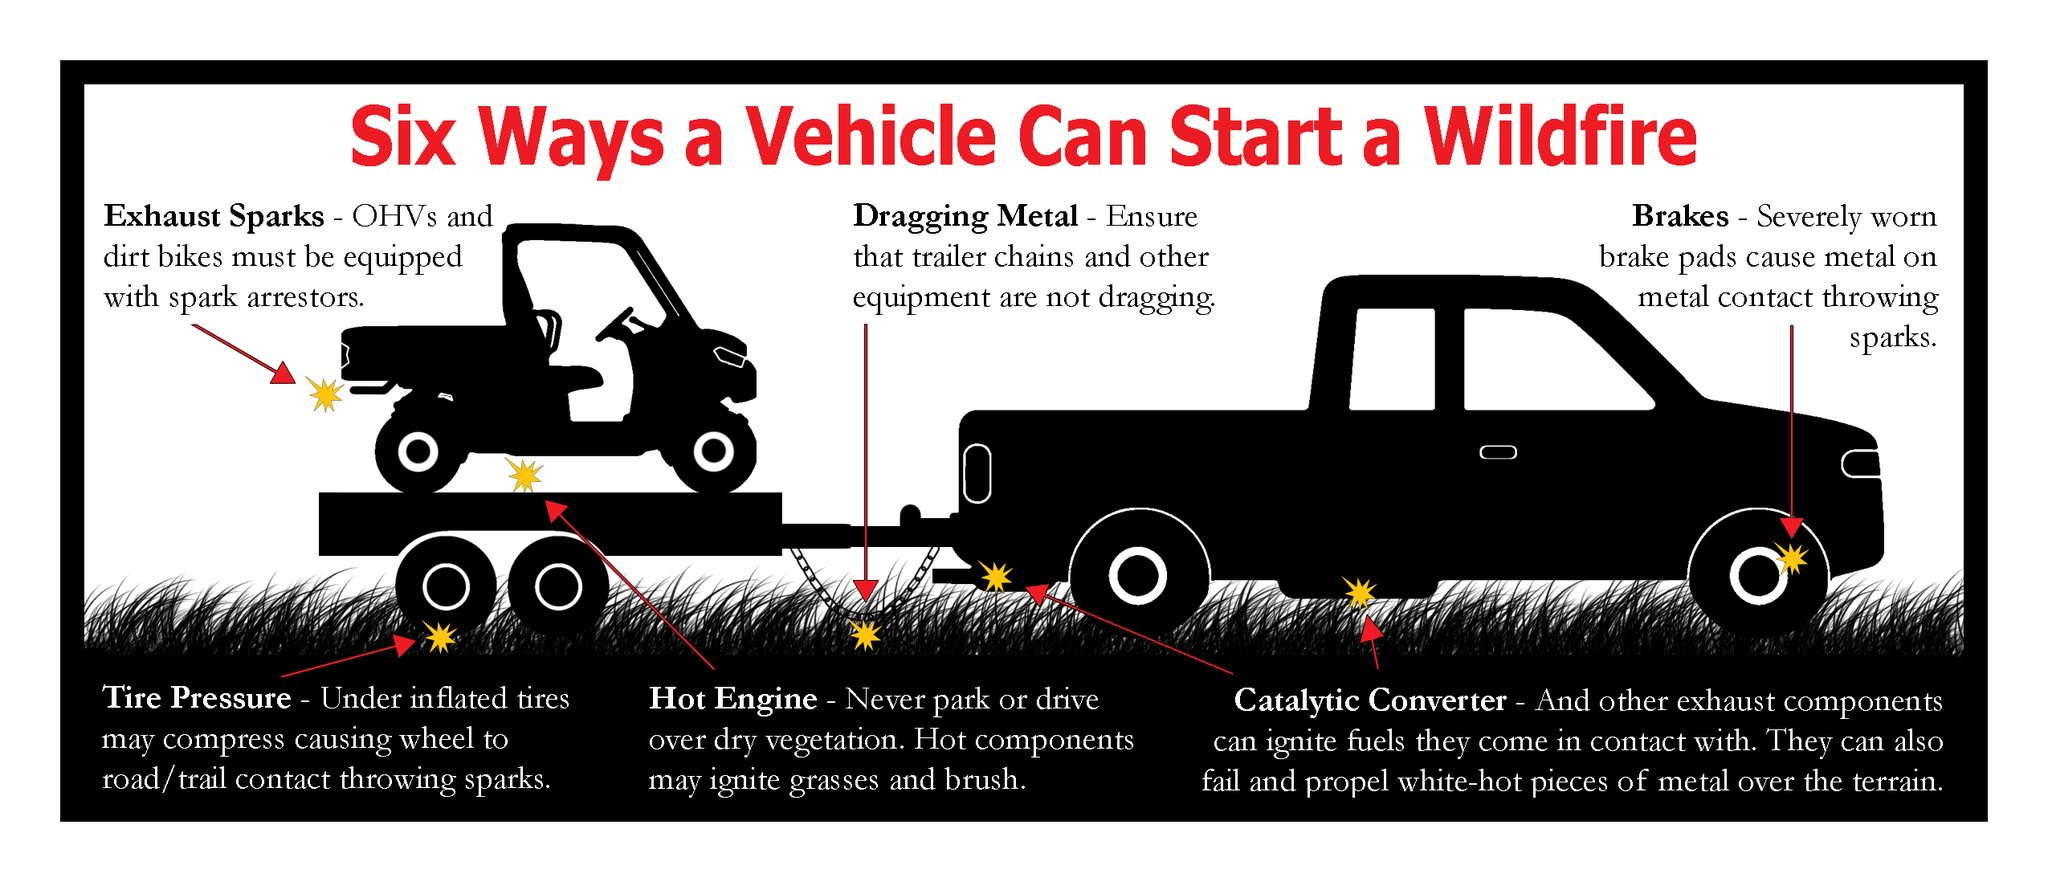 Six Ways Vehicles Start Wildfires